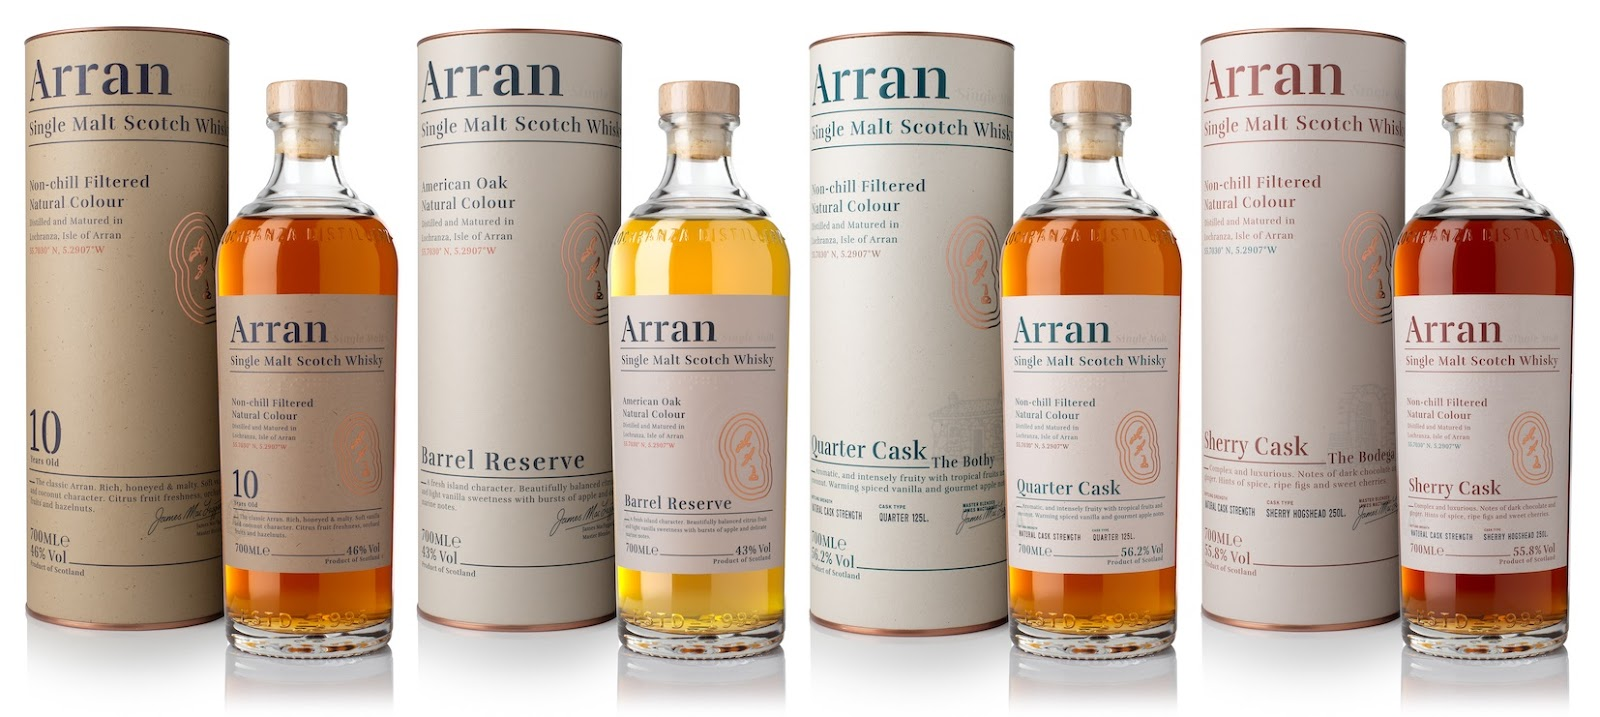 ARRAN UNVEILS NEW LOOK PACKAGING AND EXPRESSIONS